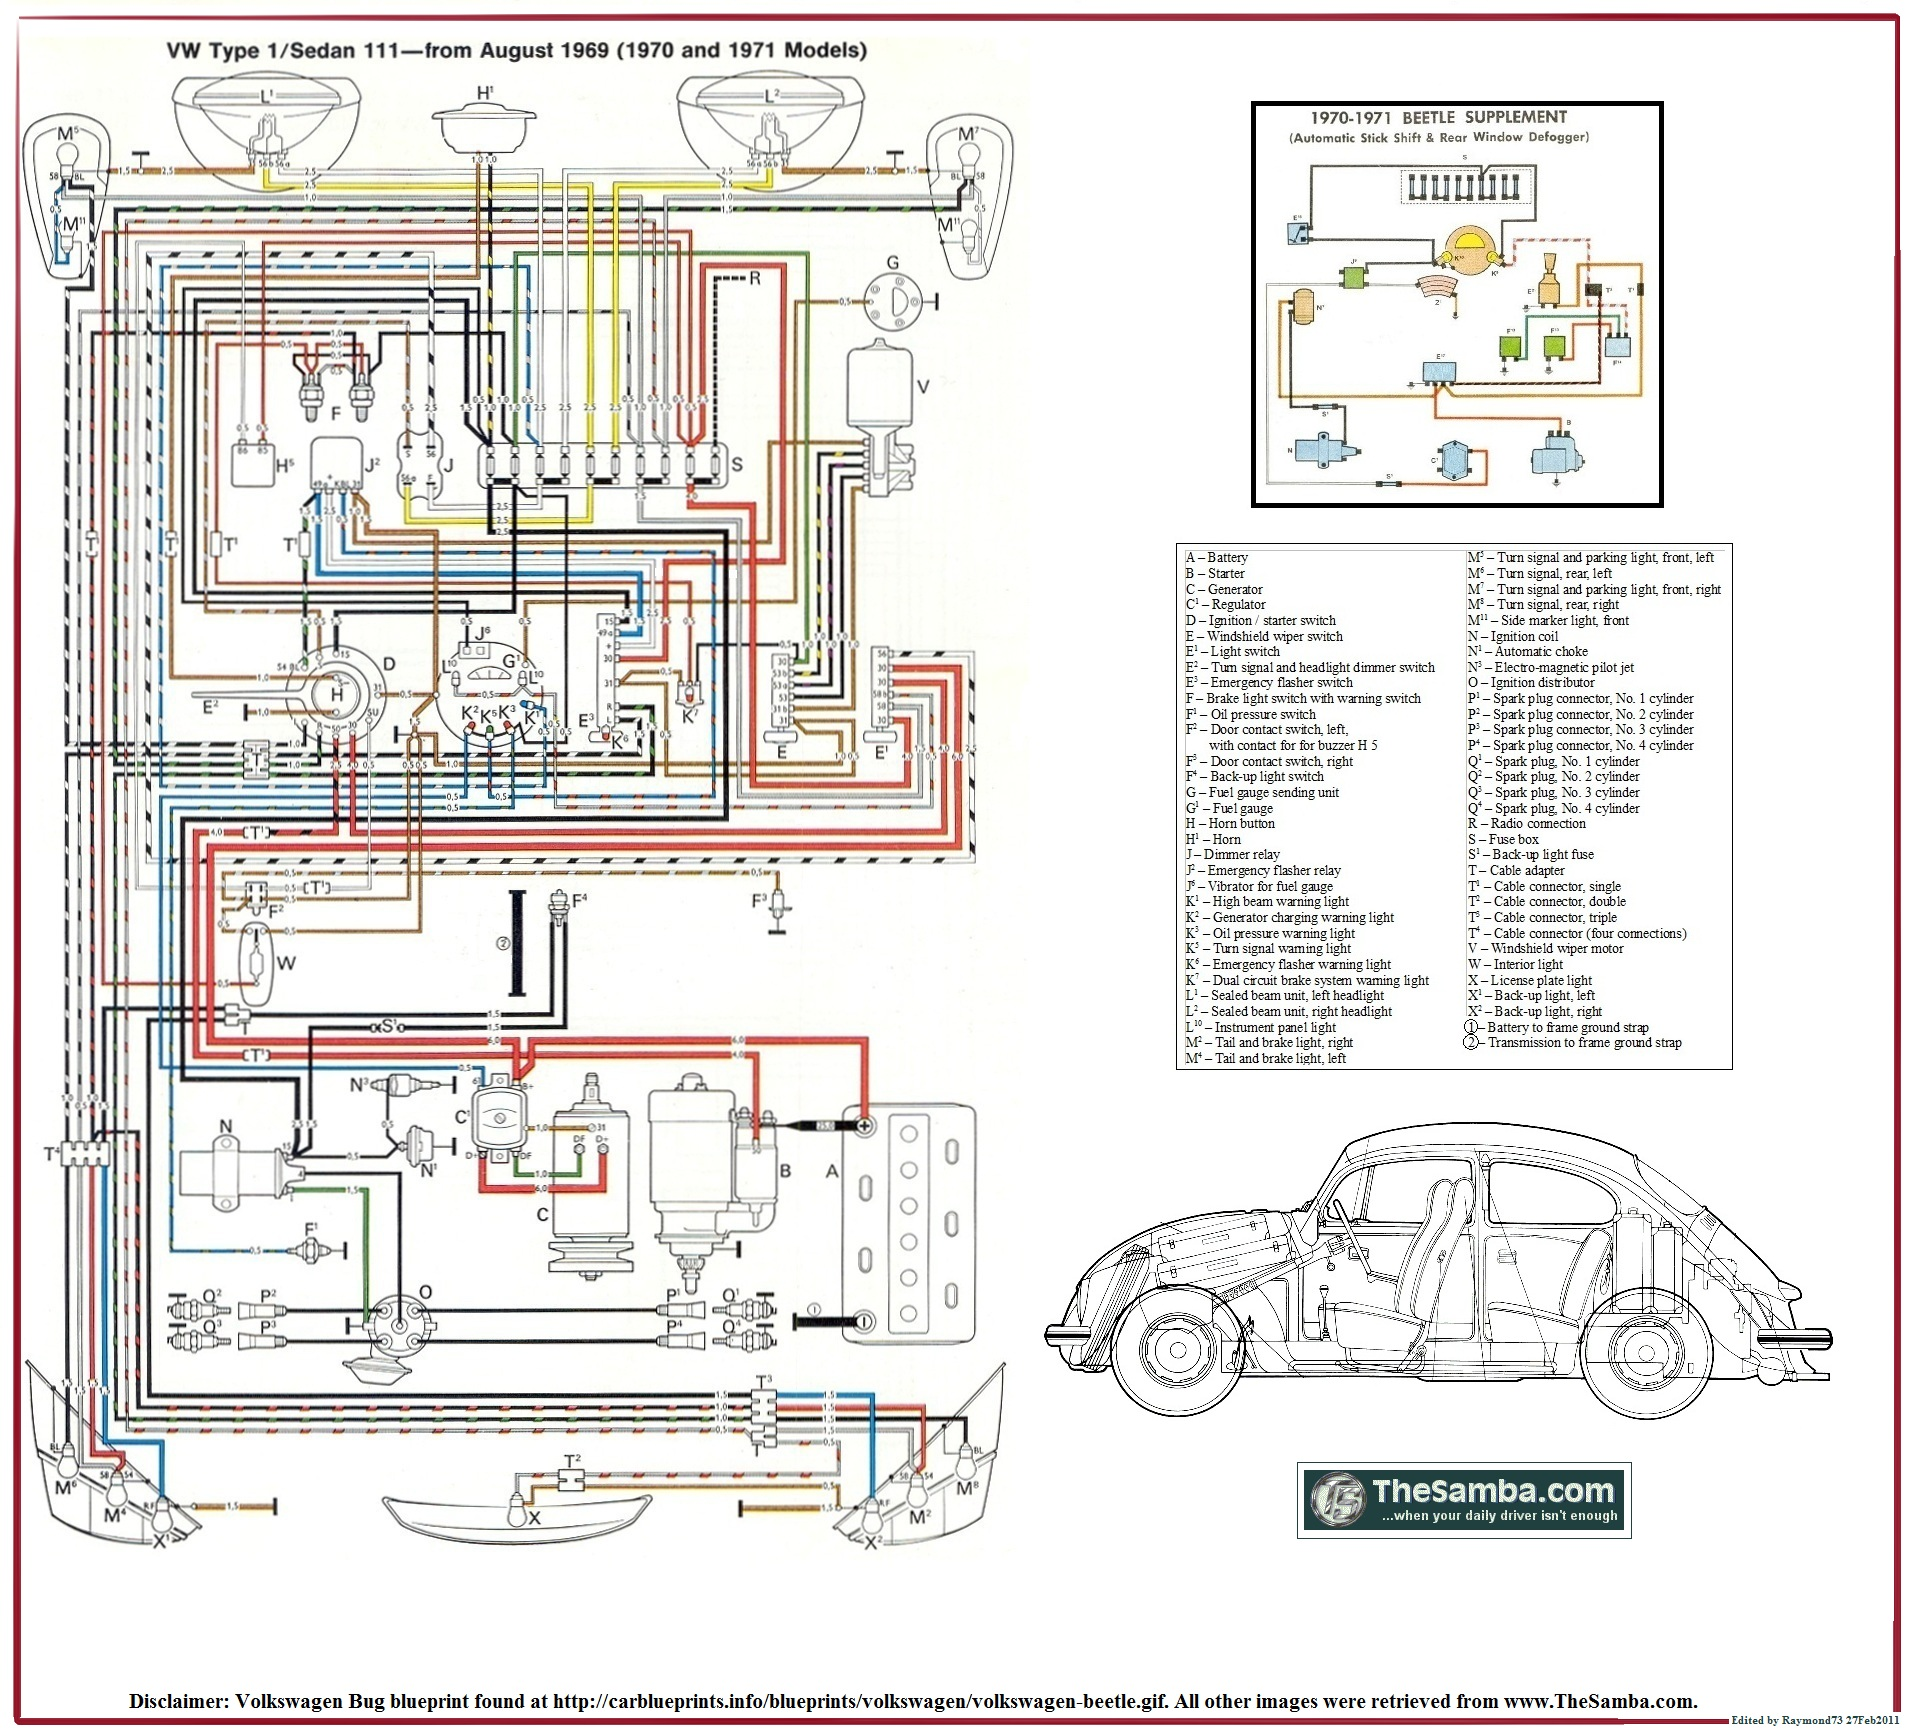 vw beetle wiring diagram vw wiring diagrams online 1969 1300 beetle wiring diagram vw